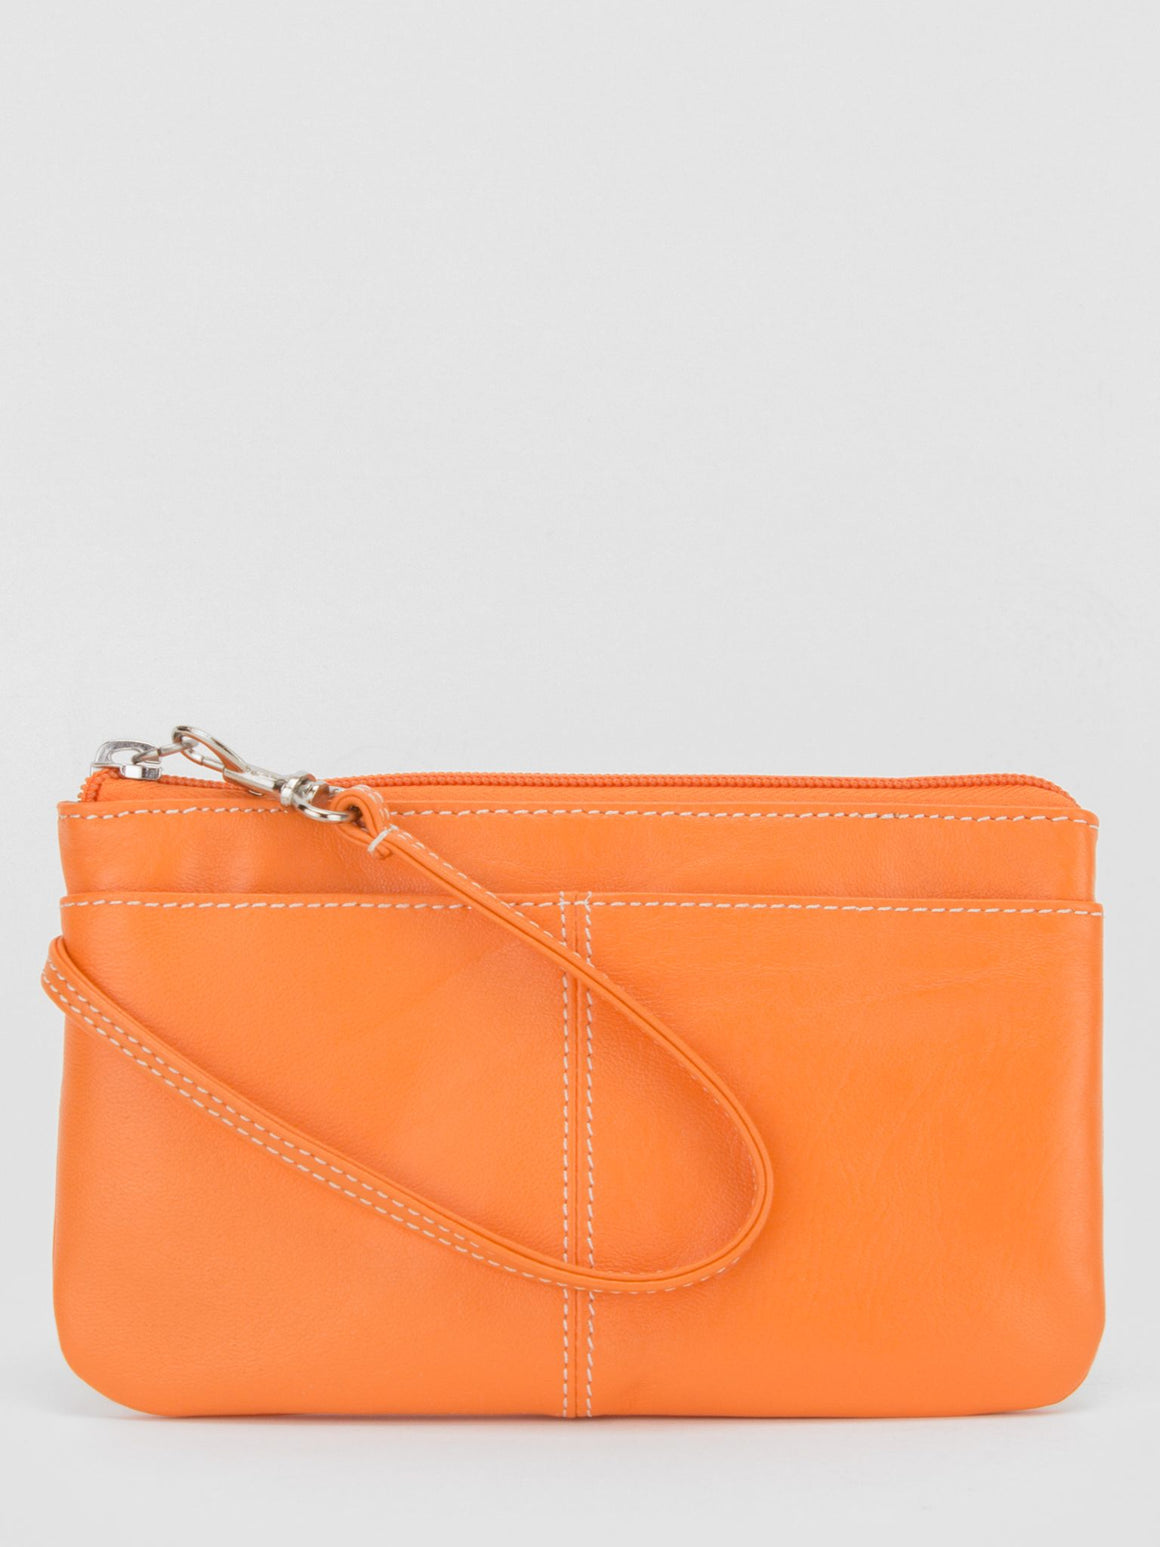 Peony Medium Leather Wristlet - Orange